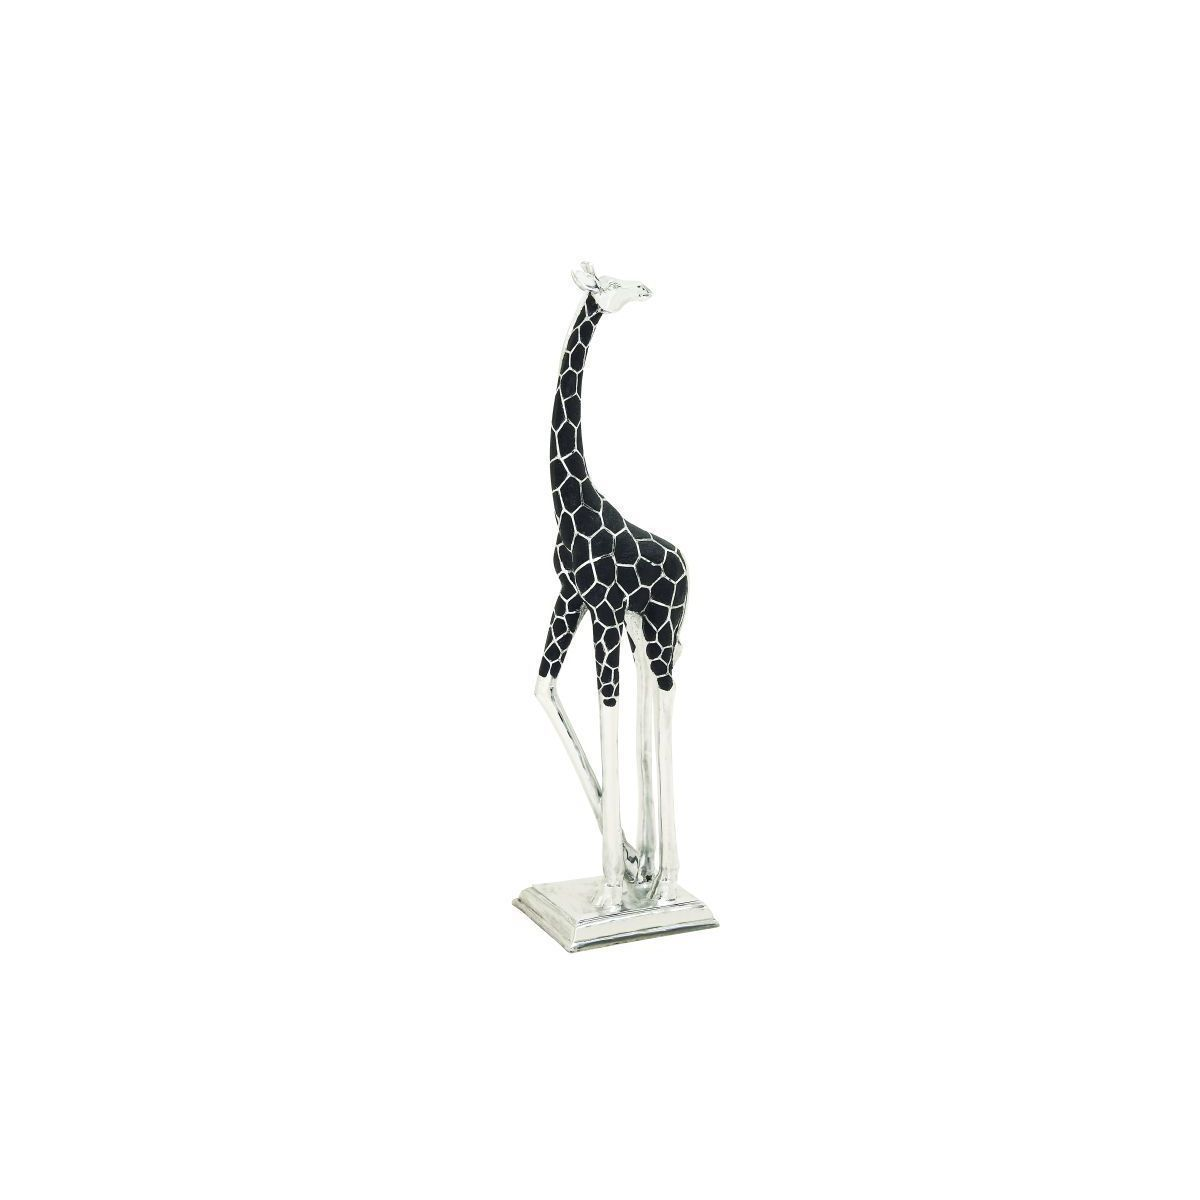 Enterprises /Silver Giraffe Sculpture